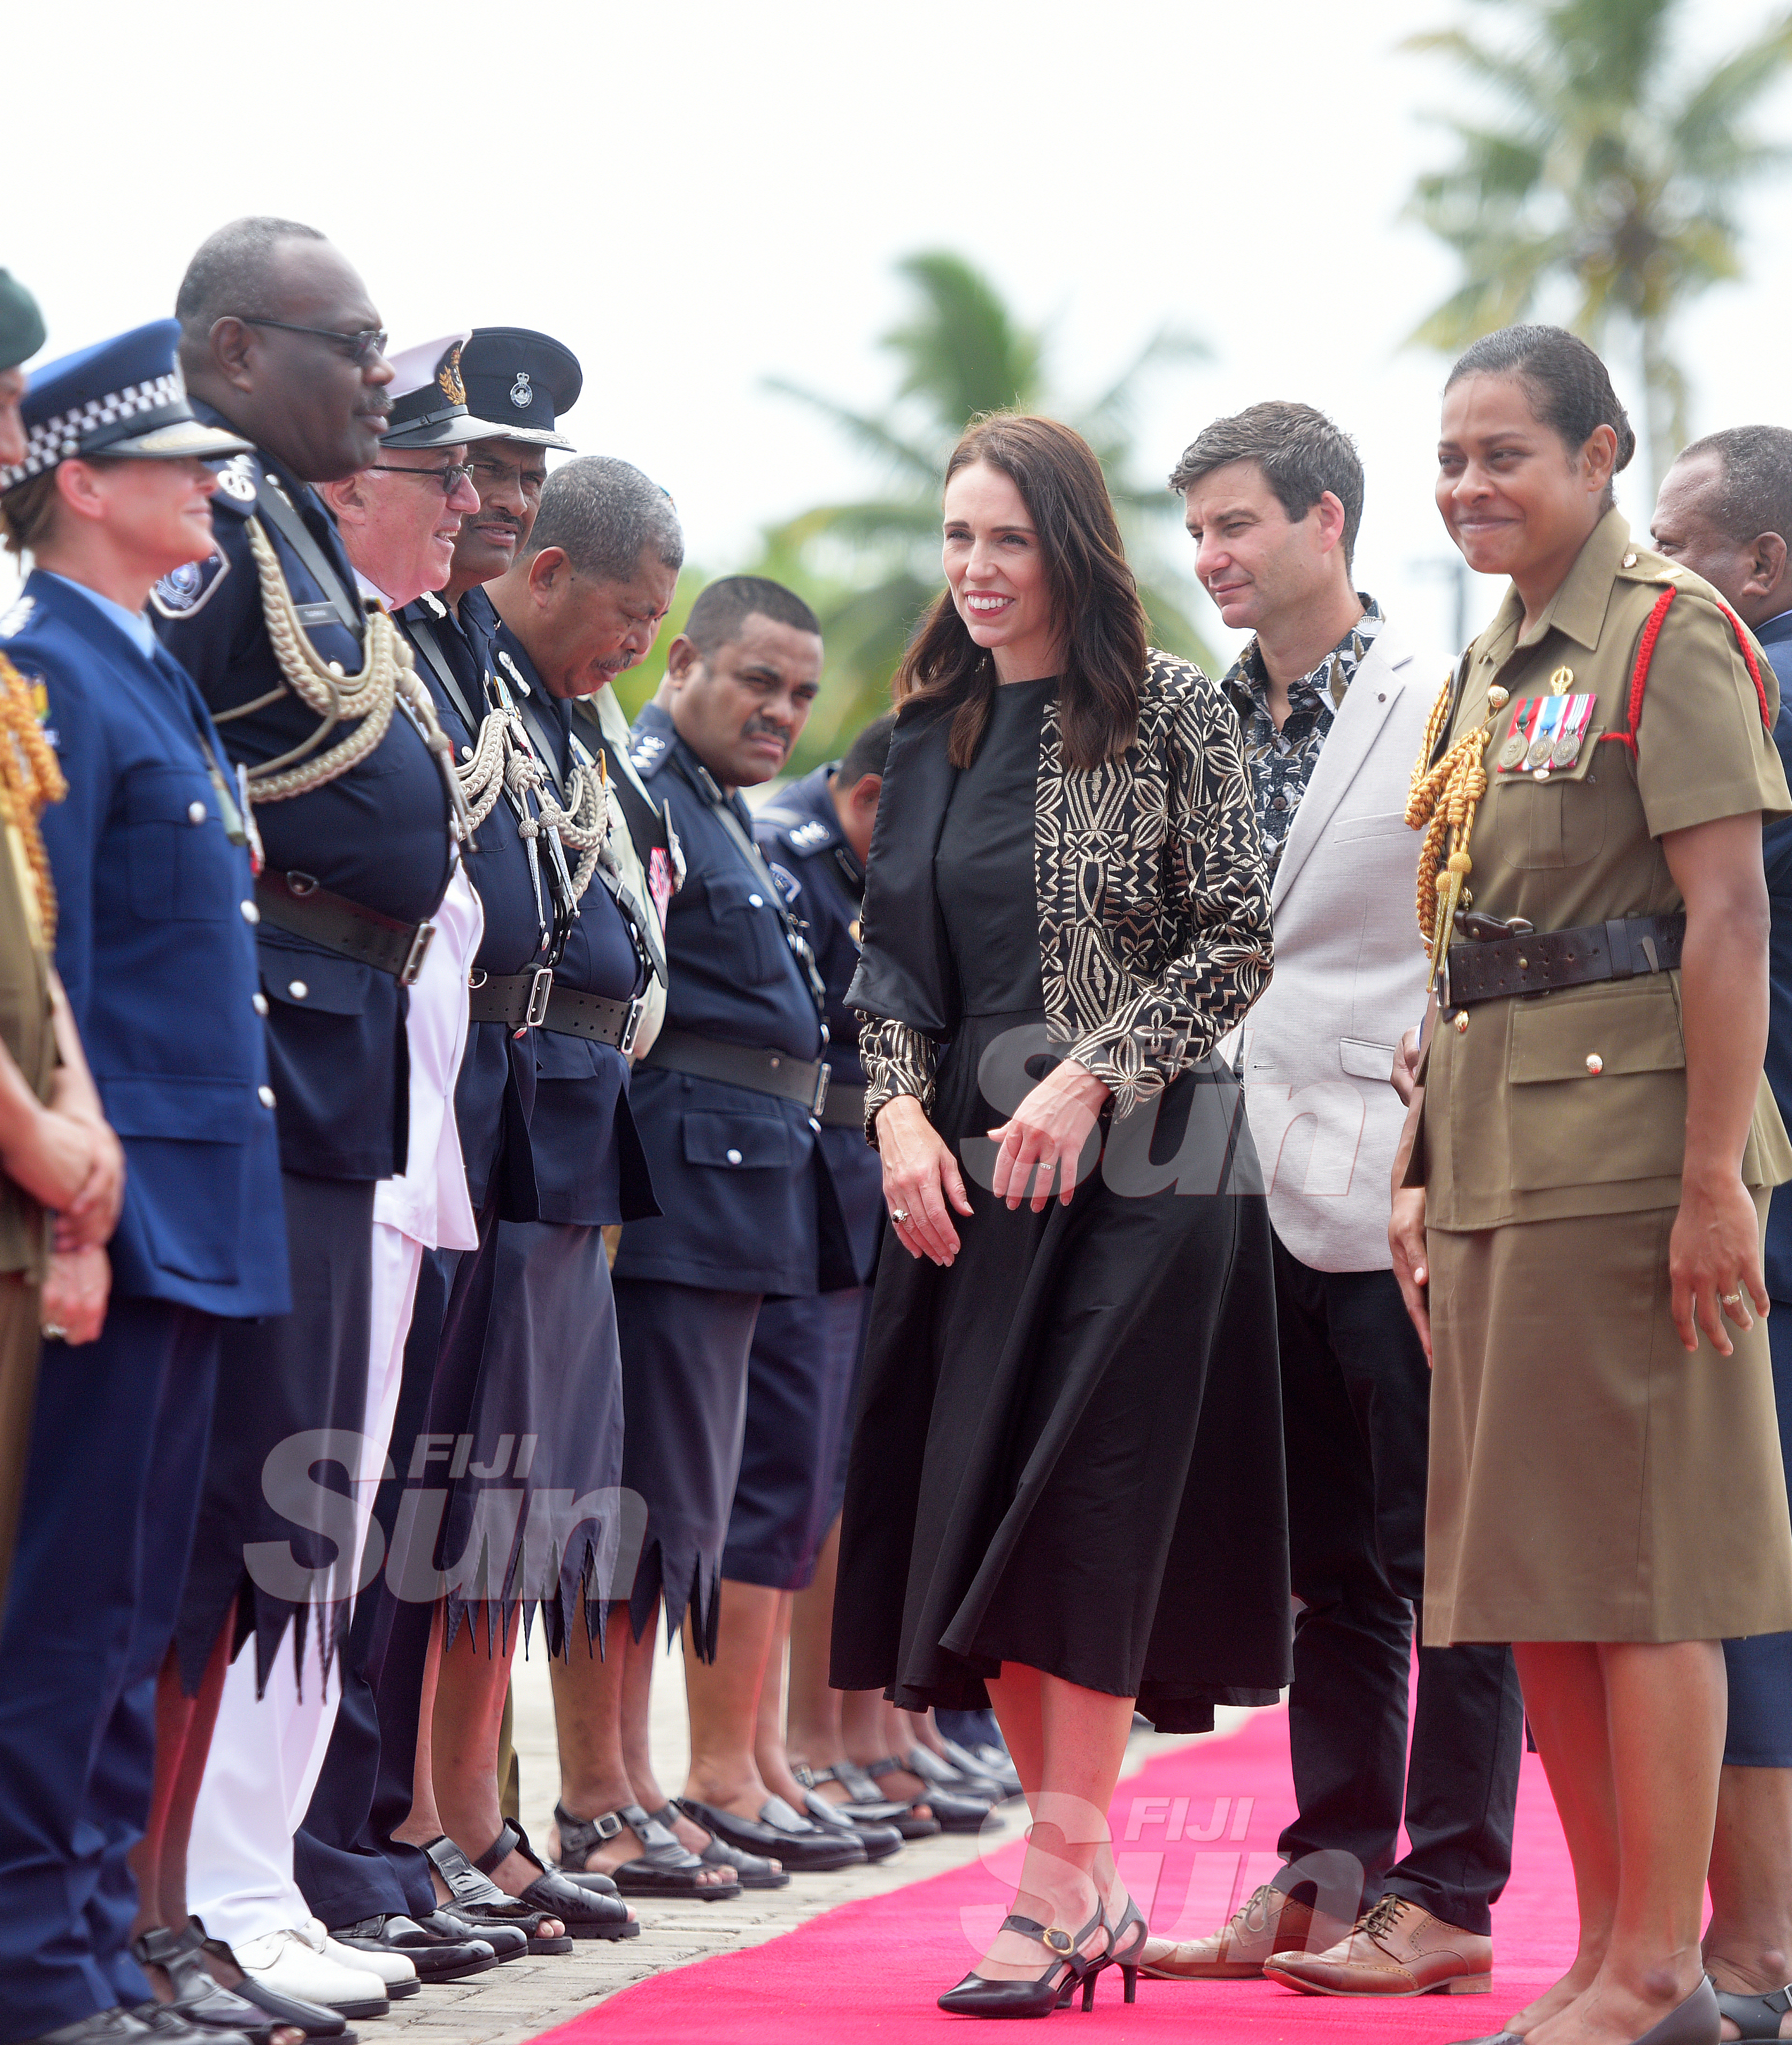 New Zealand Prime Minister Jacinda Ardern while meeting with Senior Police, Army officers and members of ex-Servicemen follwing the wreath laying ceremony at National War Memorial site on February 25, 2020. Photo: Ronald Kumar.